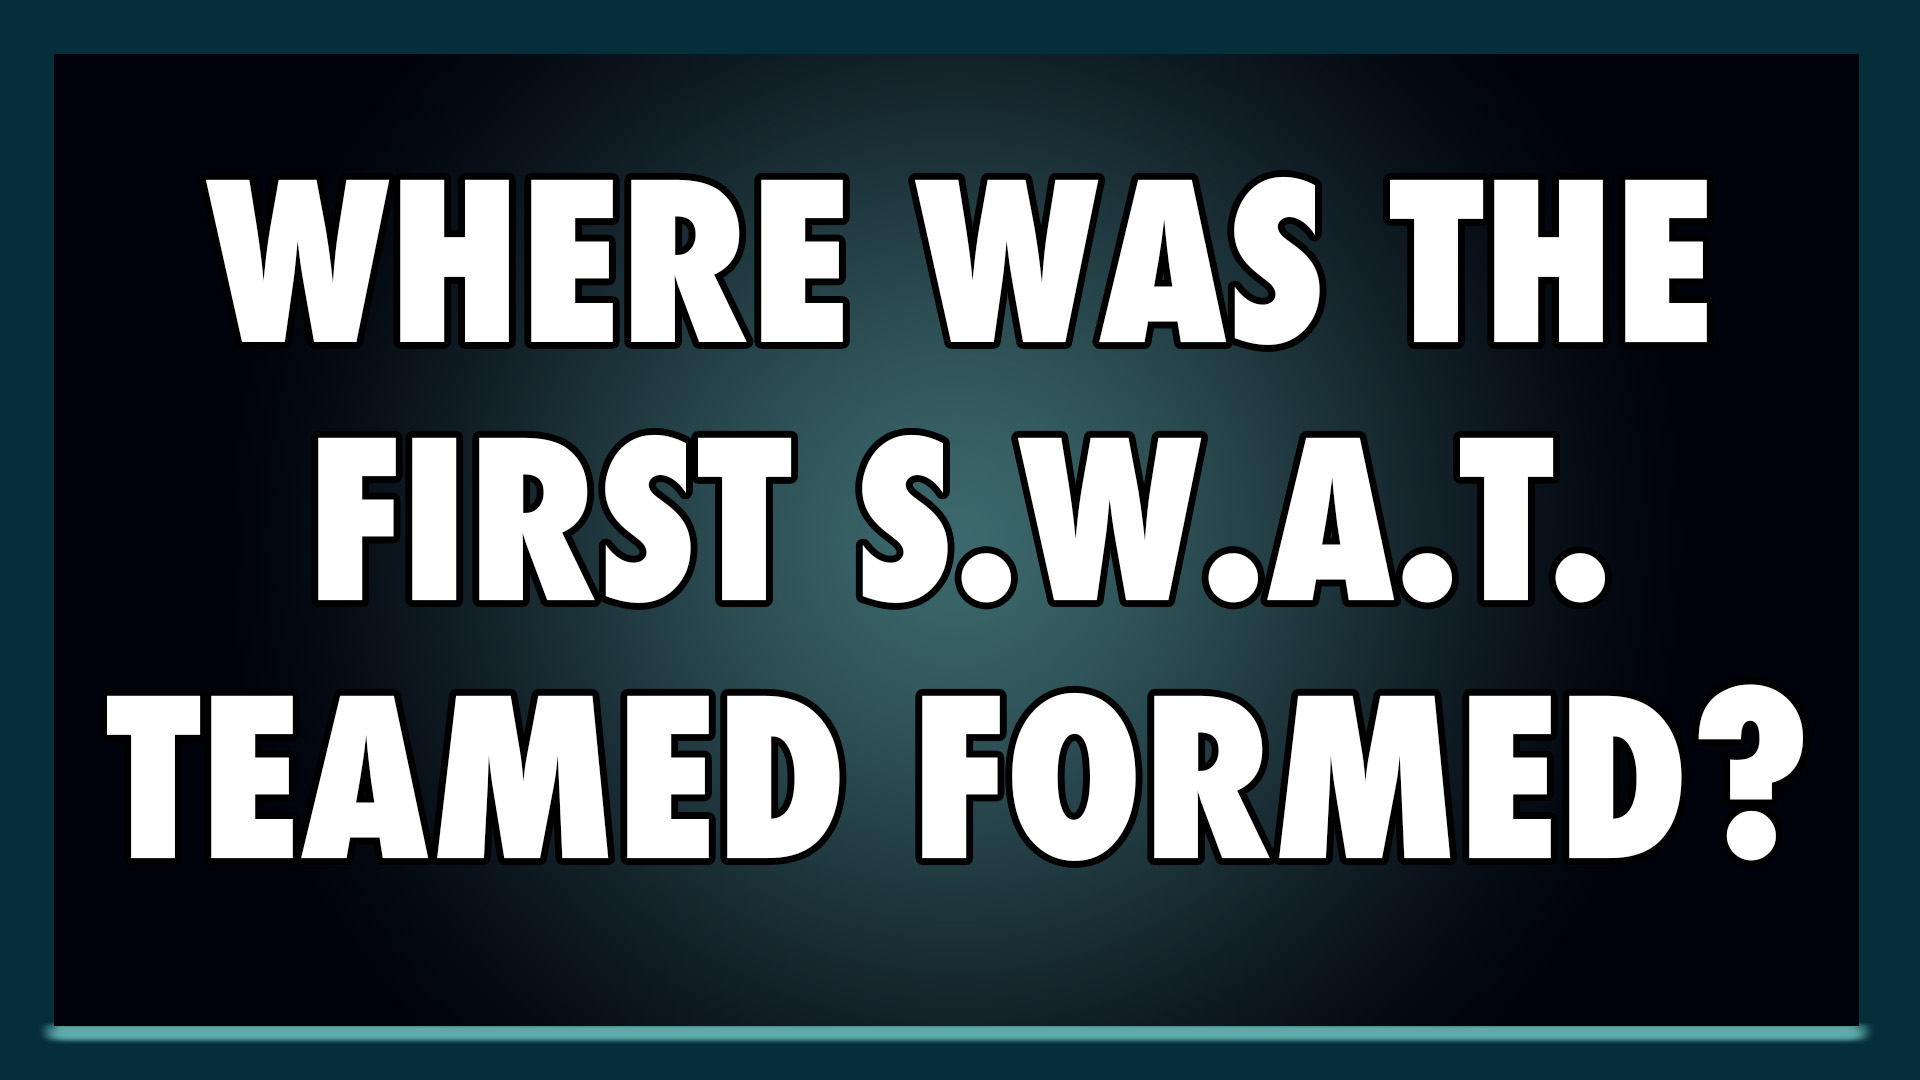 Where was the first S.W.A.T. team formed?